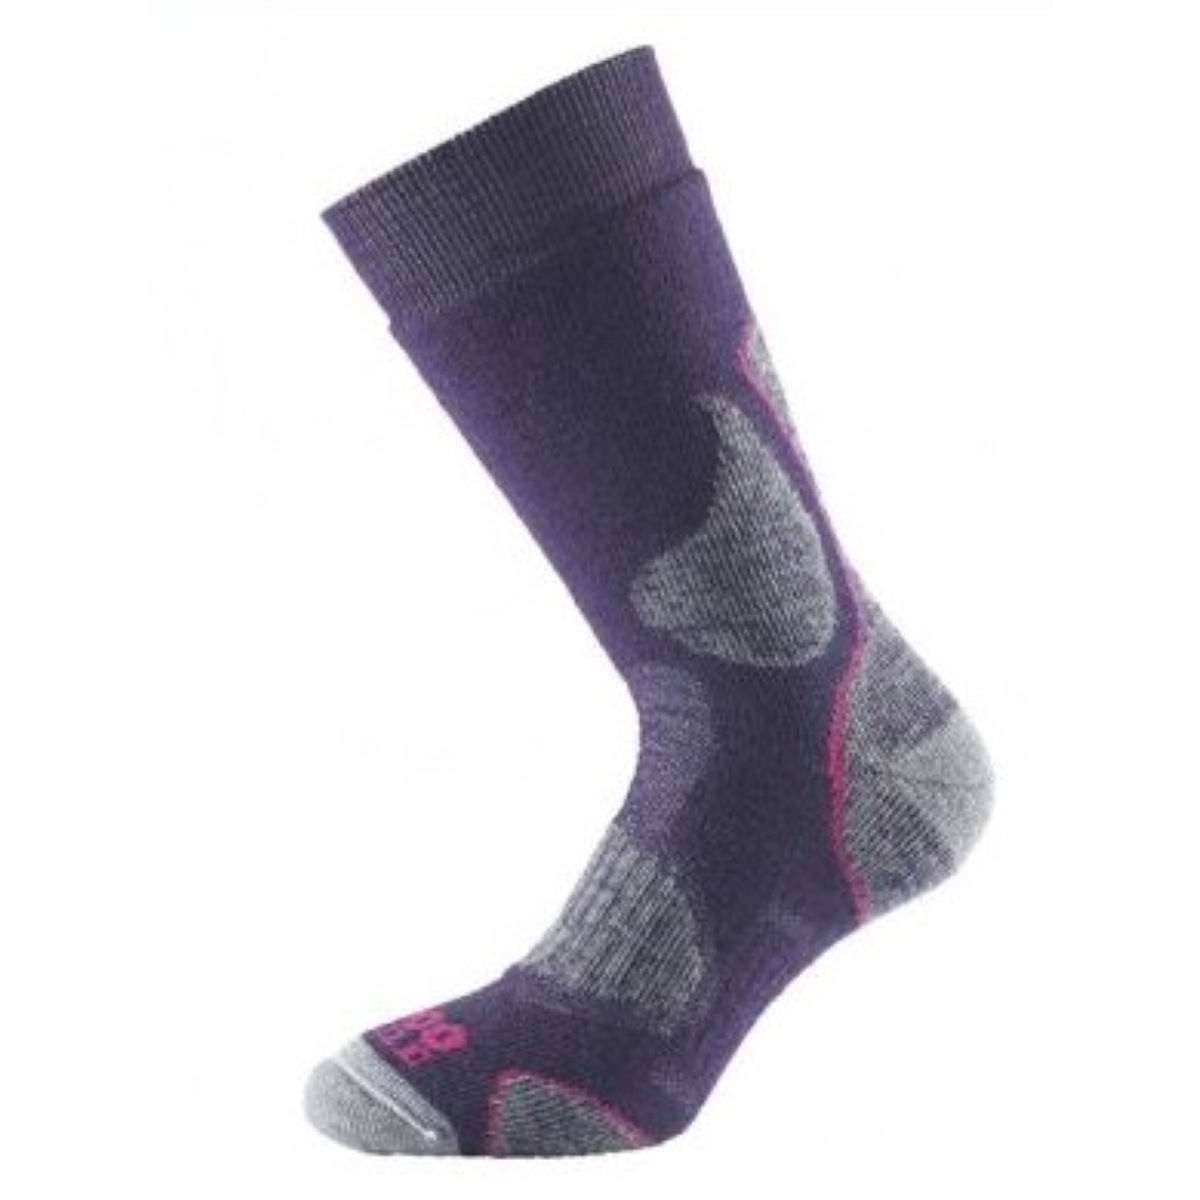 1000 Mile Women's 3 Season Walk Sock - Calcetines